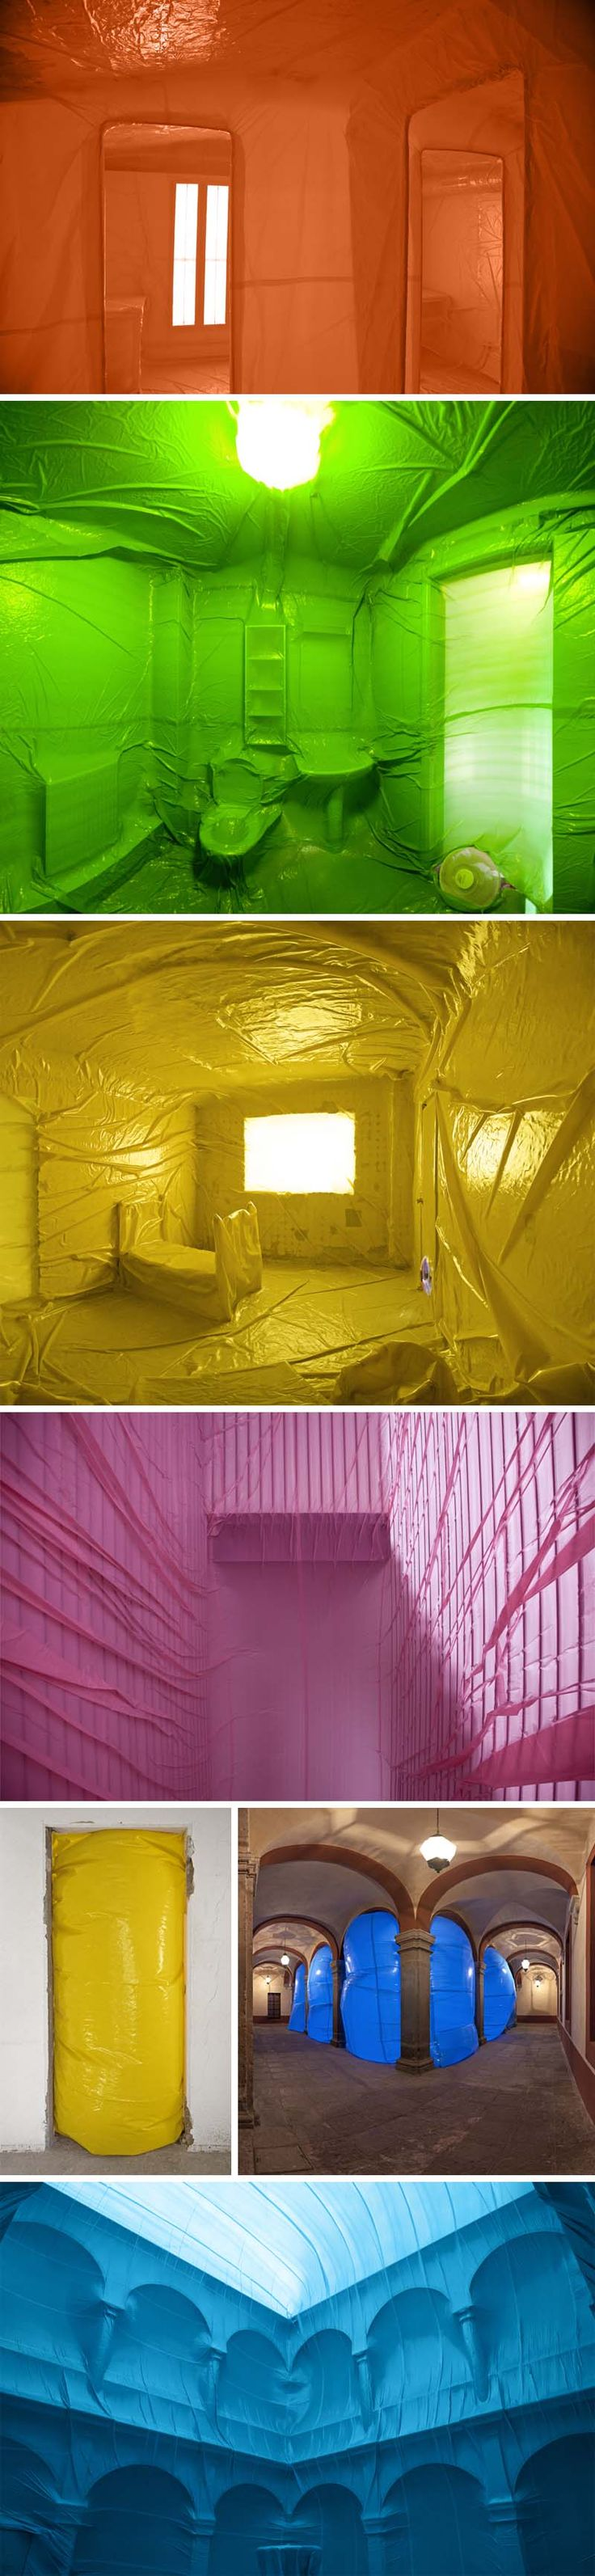 PeniqueProductions_color-Inflatables-fill-structures-erected-by-others, Spanish art collective, cool colorful installations